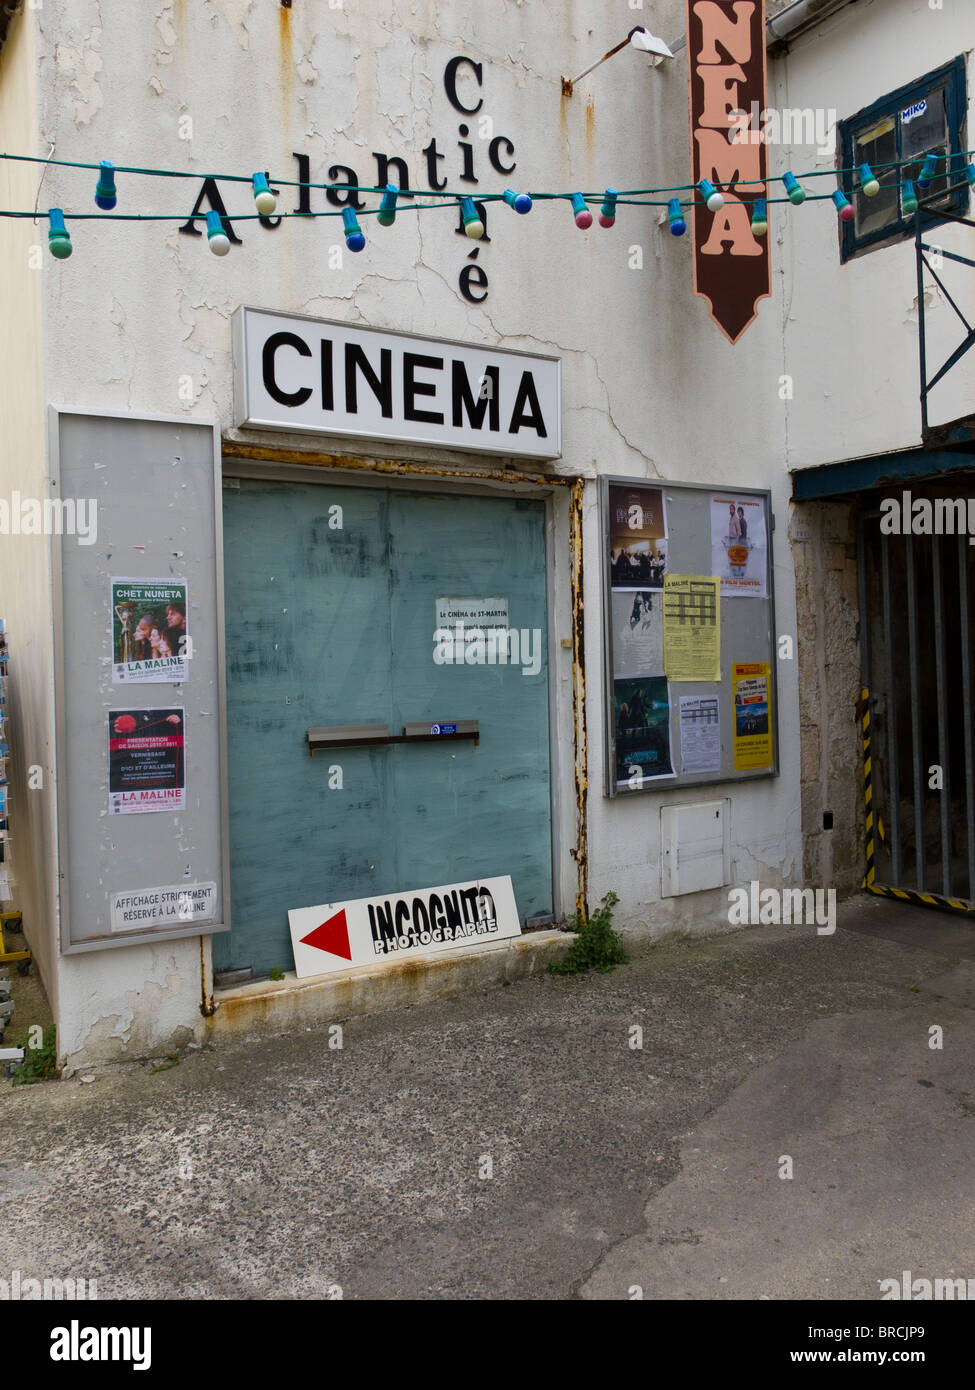 The Atlantic Cine cinema in the resort town of St Martin de Re on the Ile de Re near La Rochelle in France - Stock Image